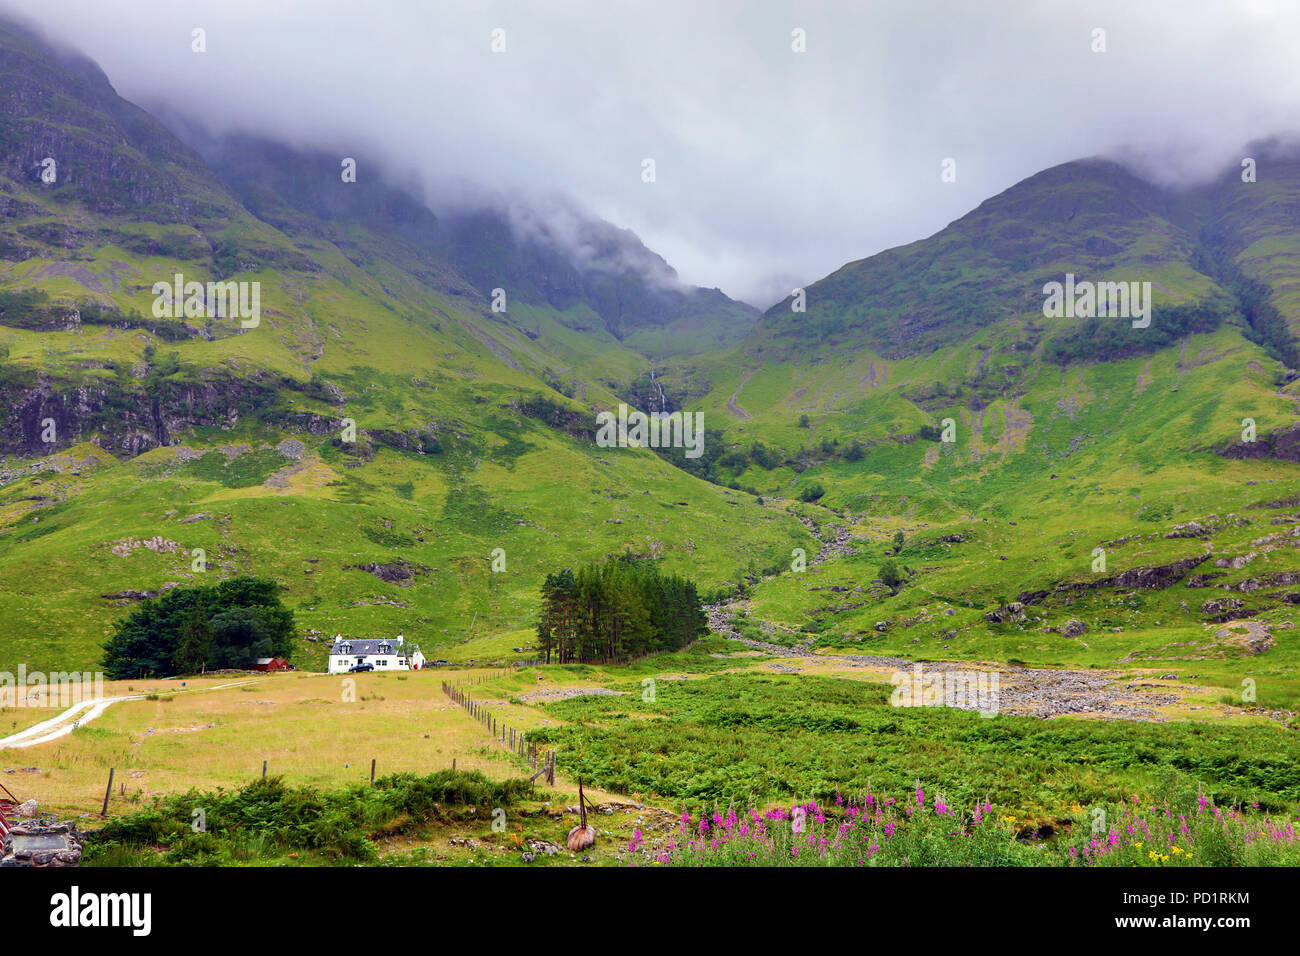 Mountains in Glen Coe in the Scottish Highlands, Scotland - Stock Image